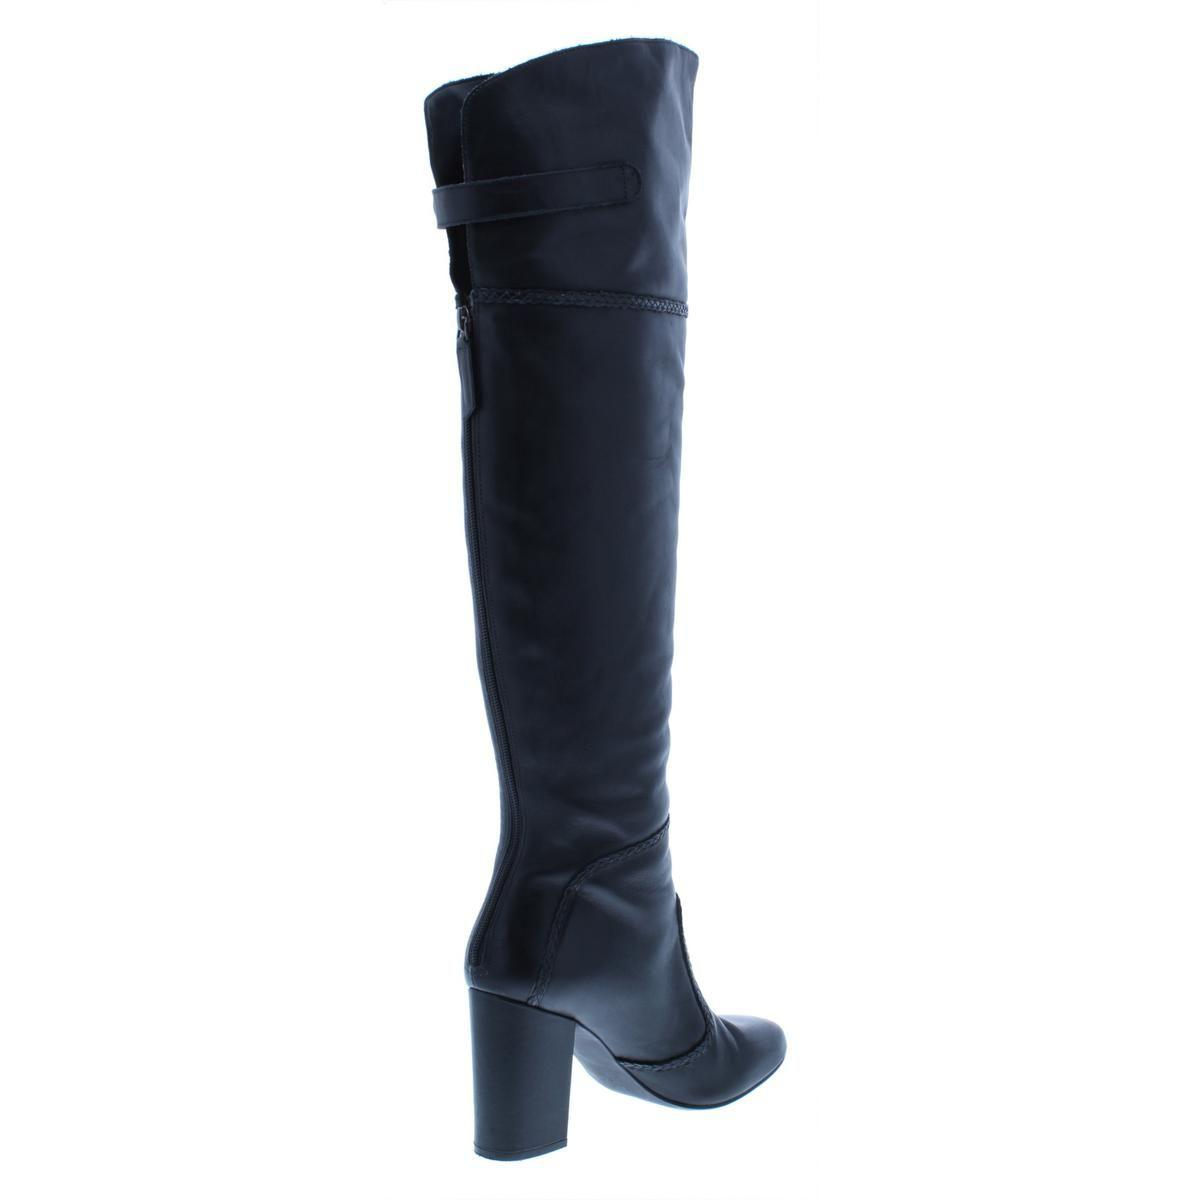 3b9ab081ae4 ... Womens Jena Leather Round Toe Over-the-knee Boots -. View fullscreen